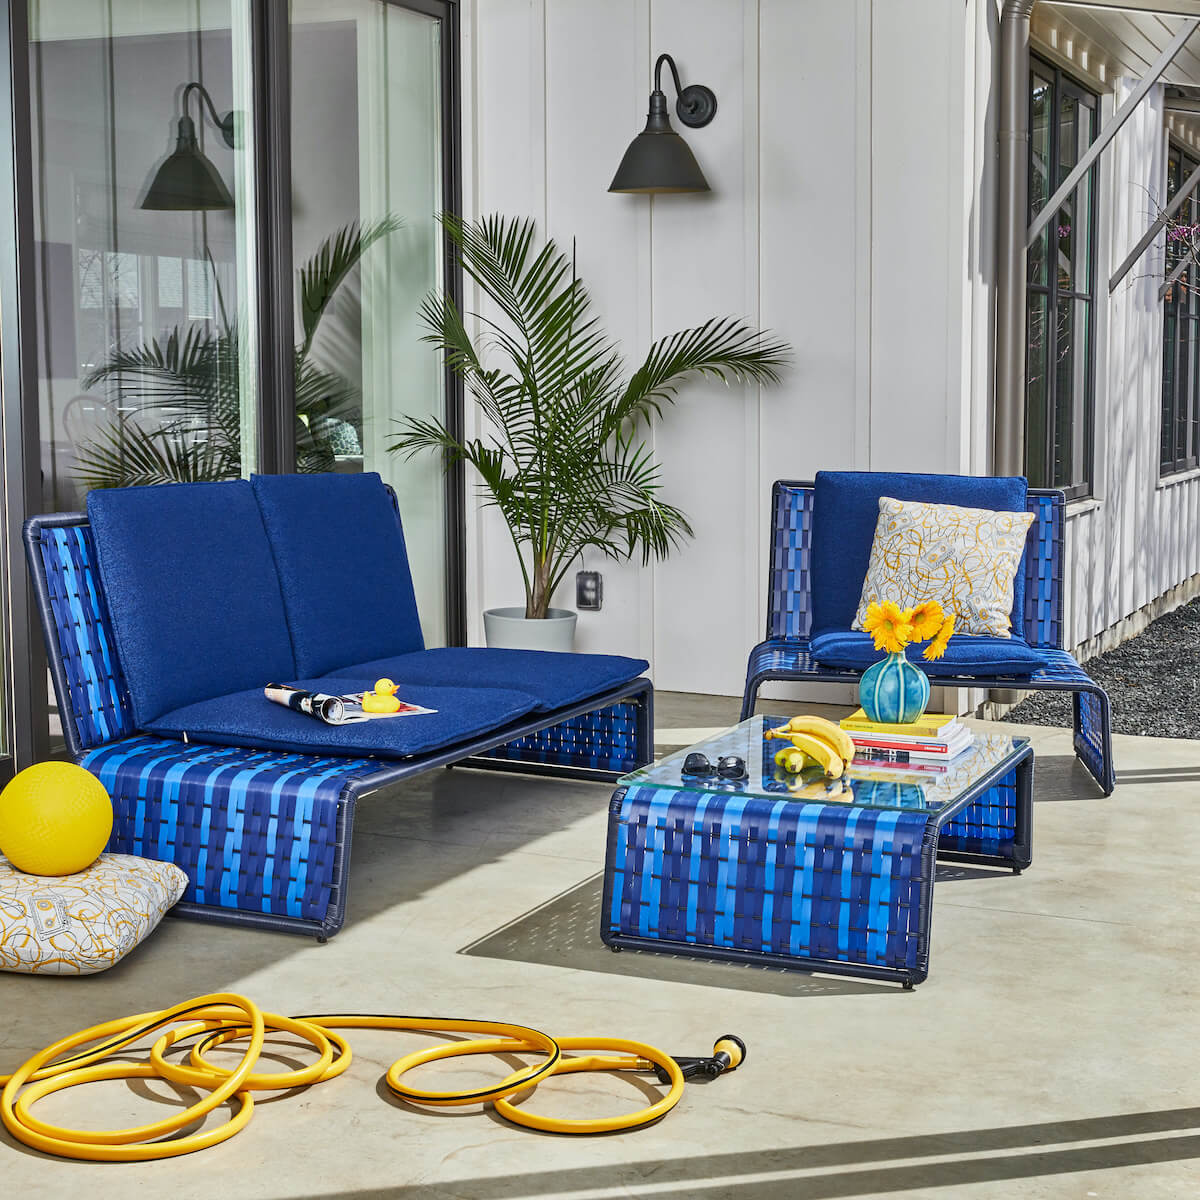 stori modern tabloid woven outdoor seating in blue